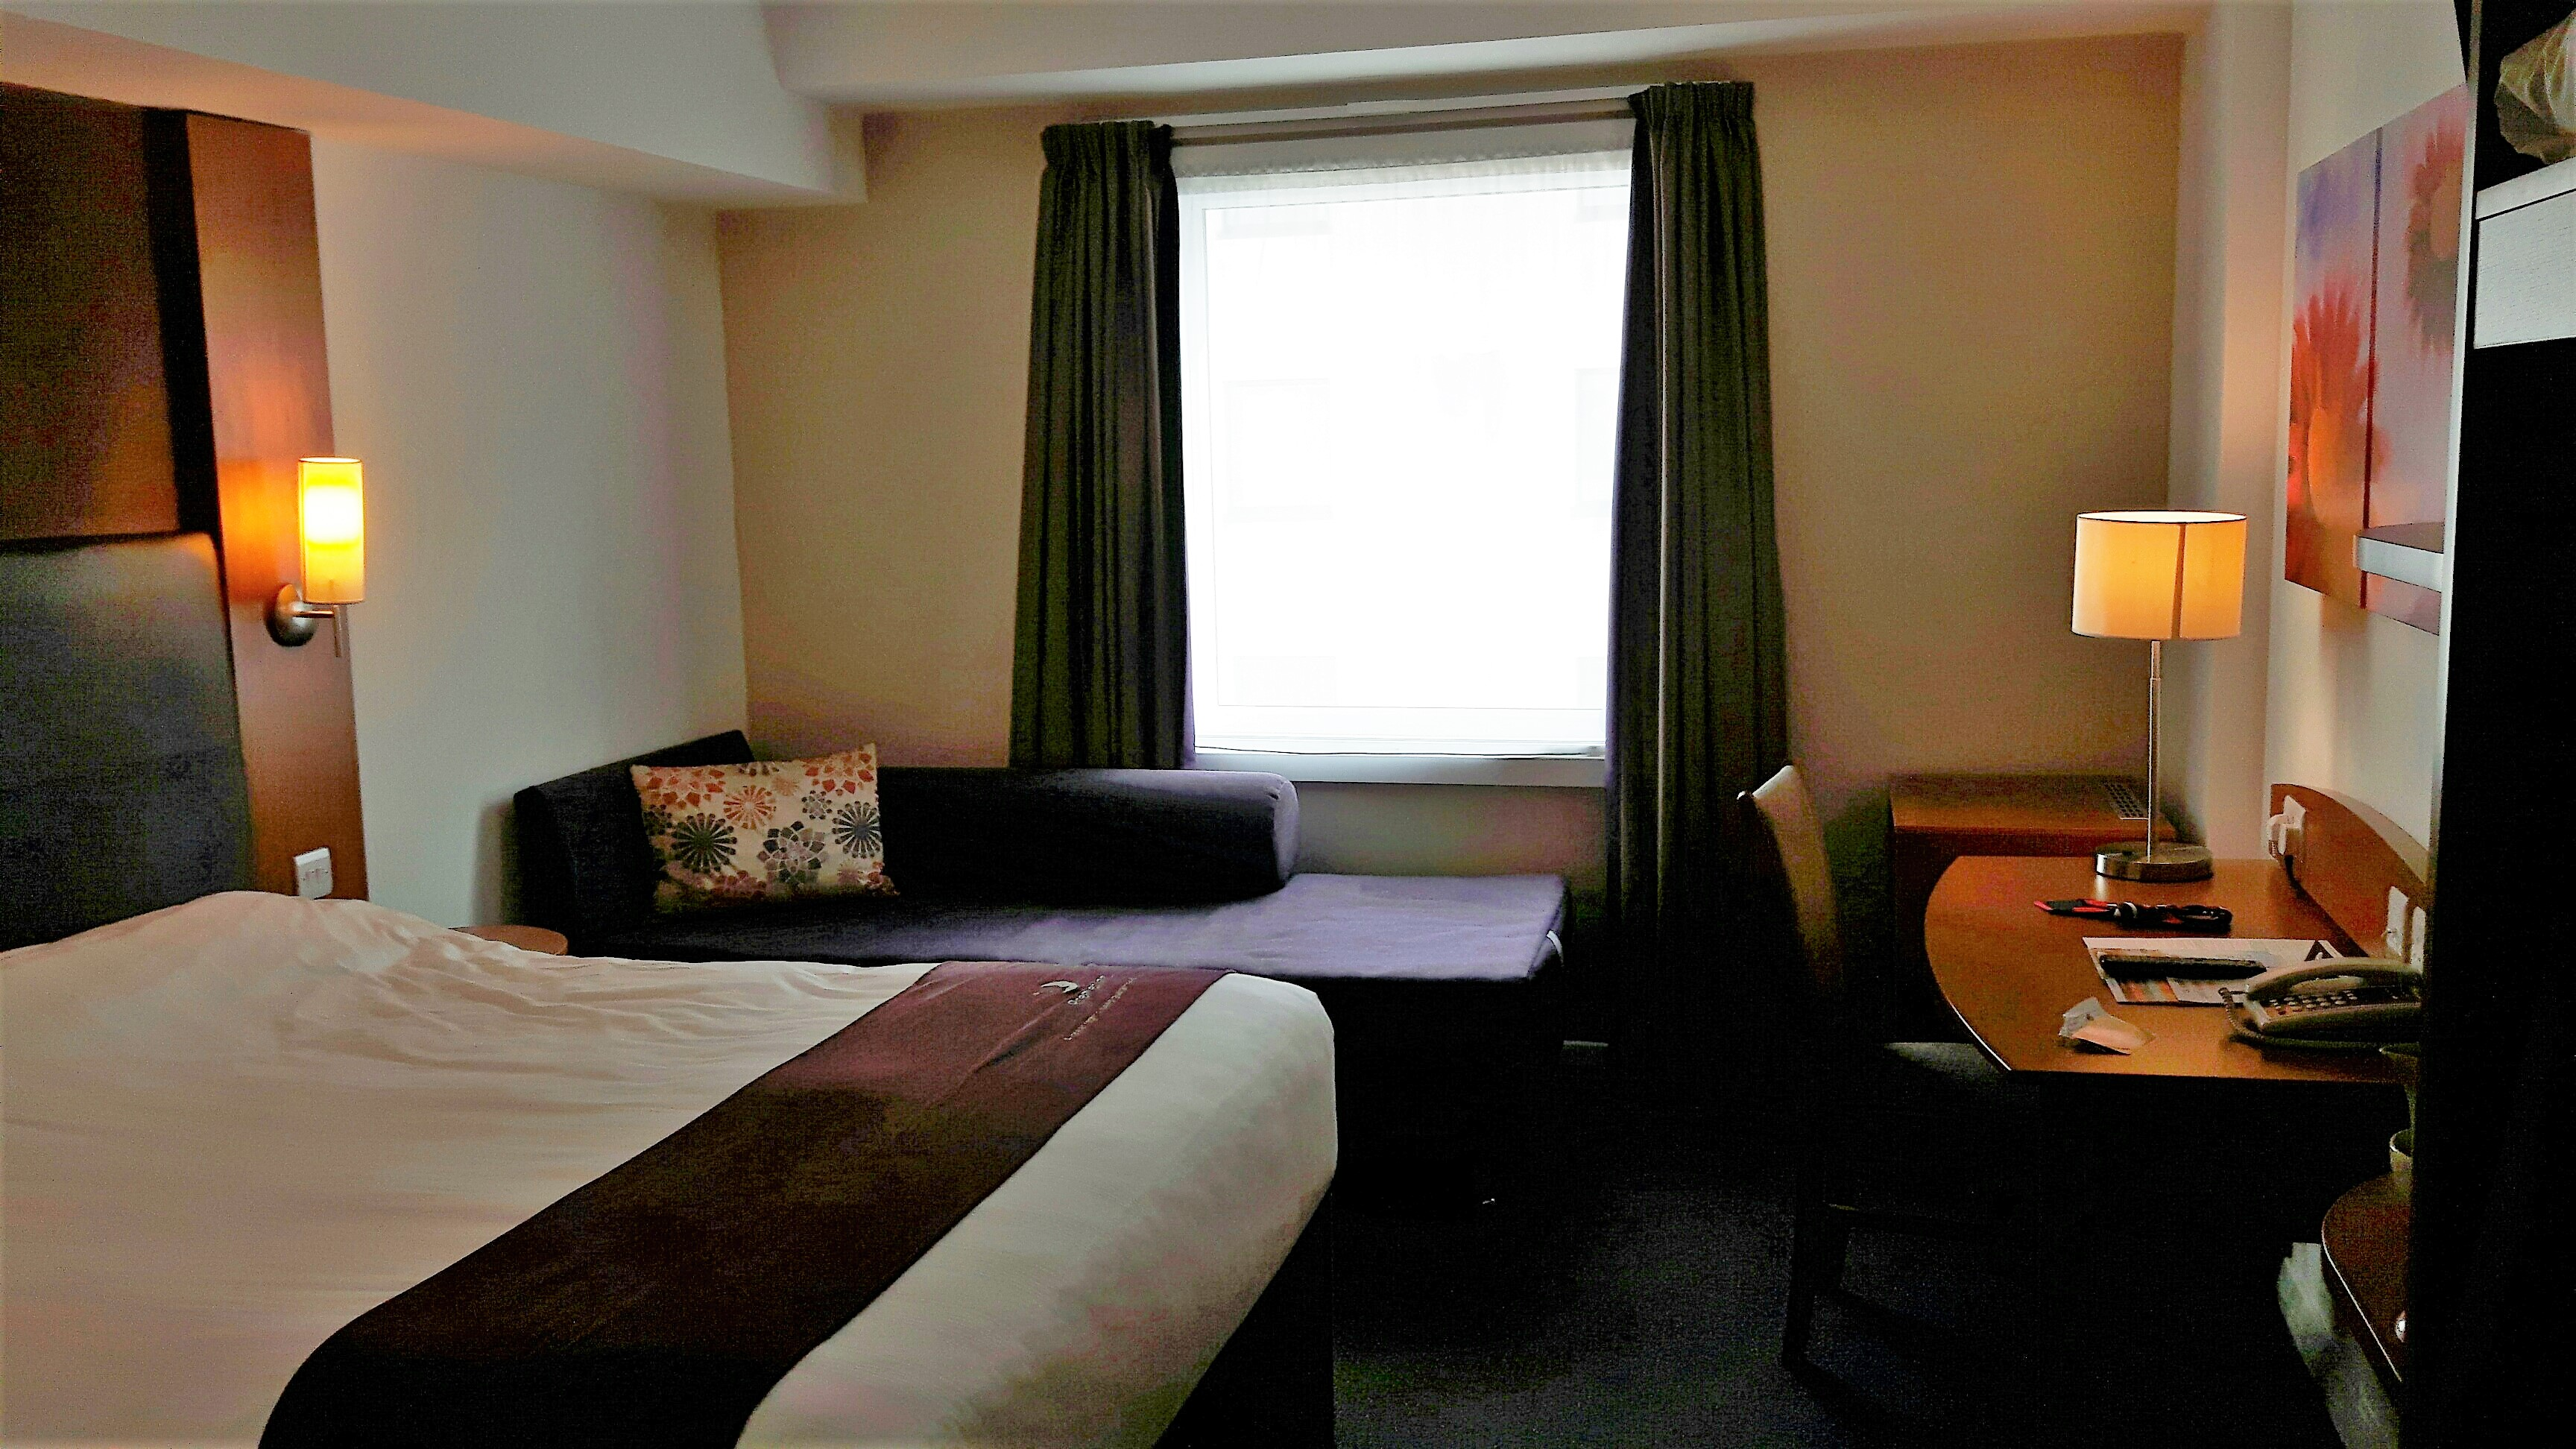 Premier Inn T5 Heathrow review